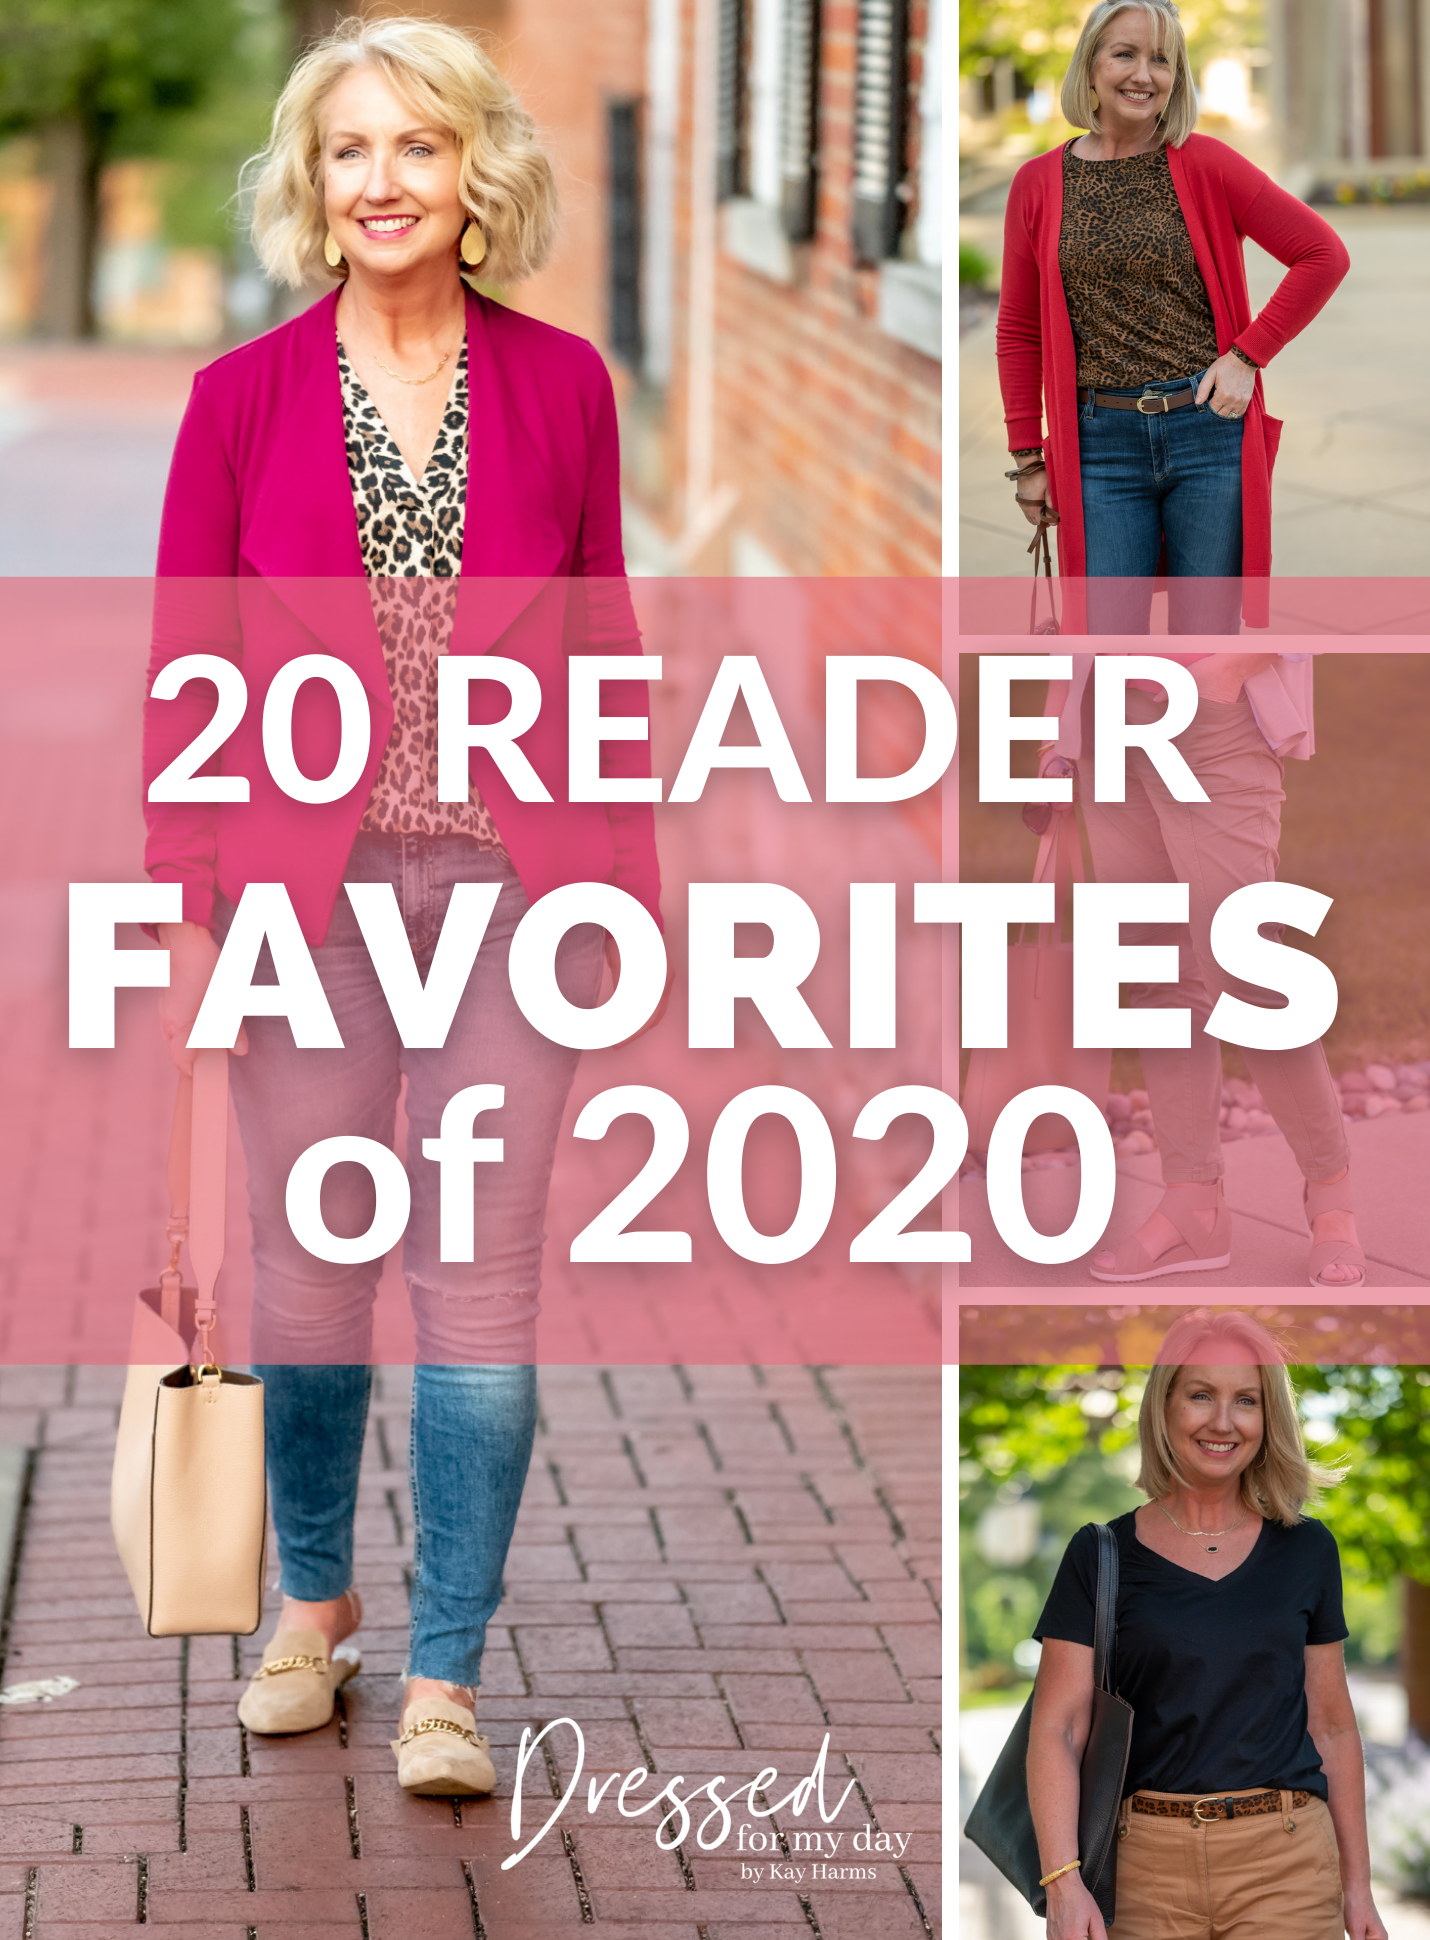 20 Reader Favorites of 2020